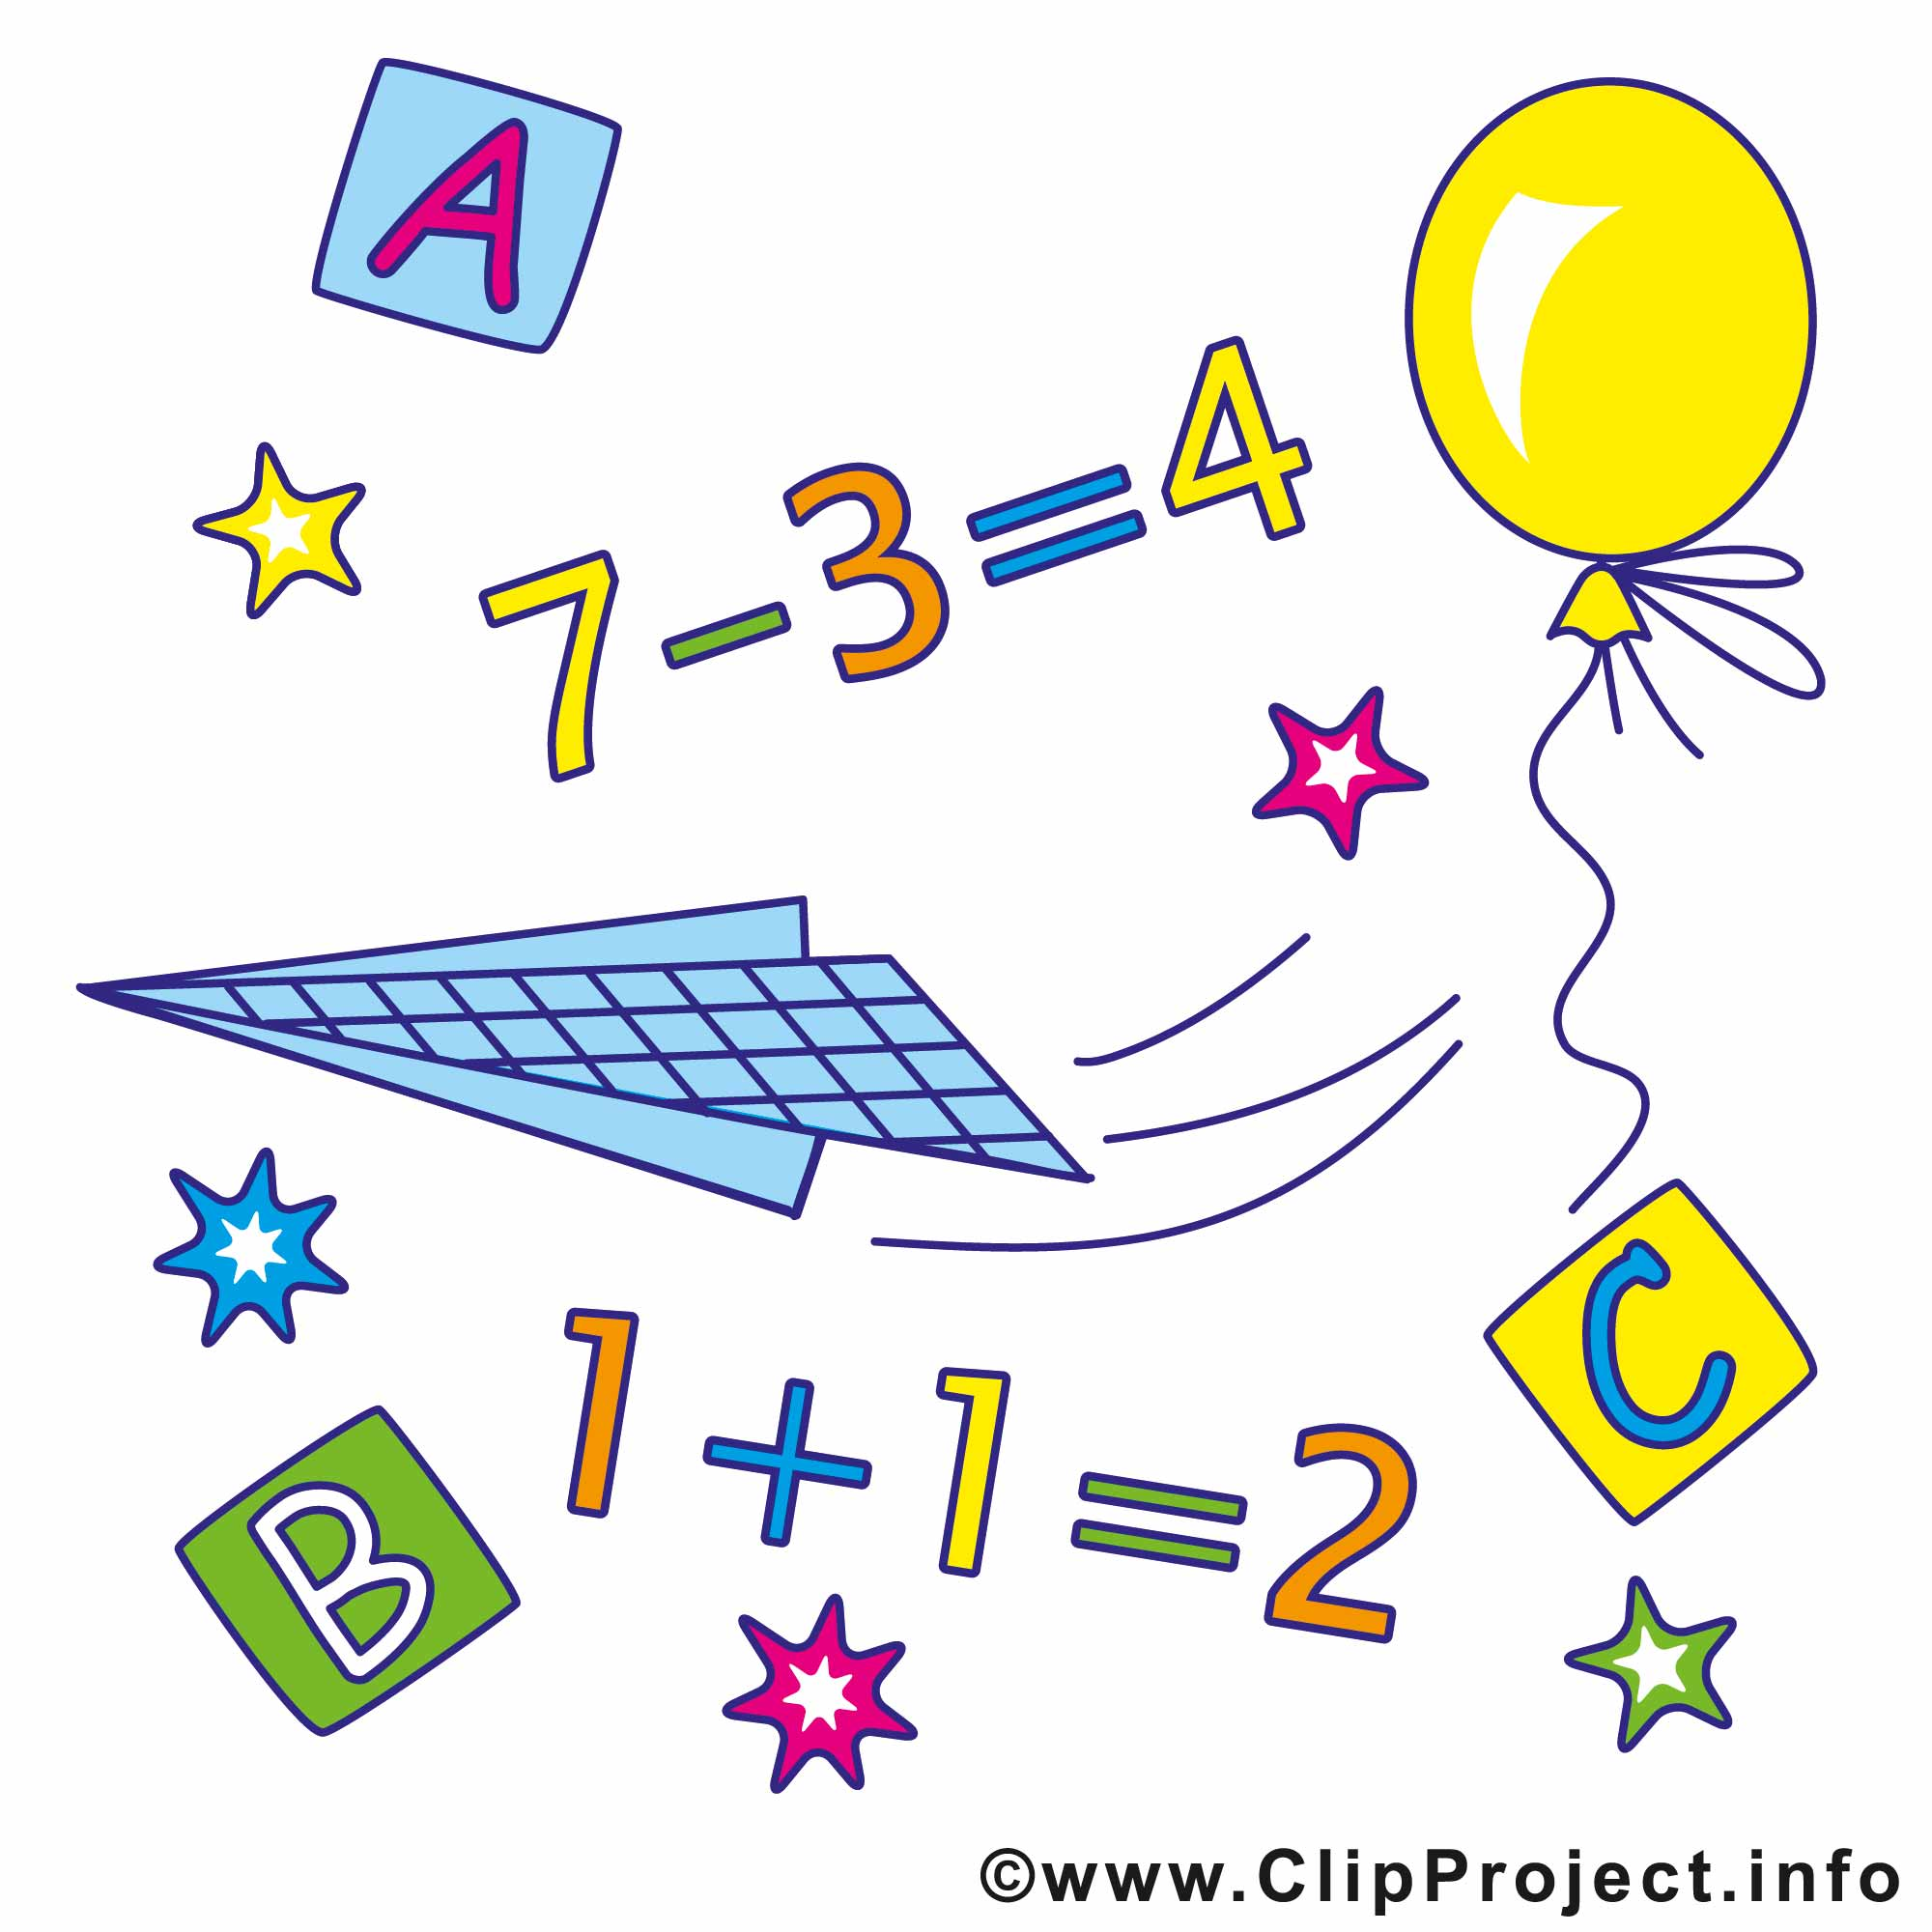 Clipart kostenlos schulanfang graphic freeuse download Clipart kostenlos schulanfang - ClipartFest graphic freeuse download